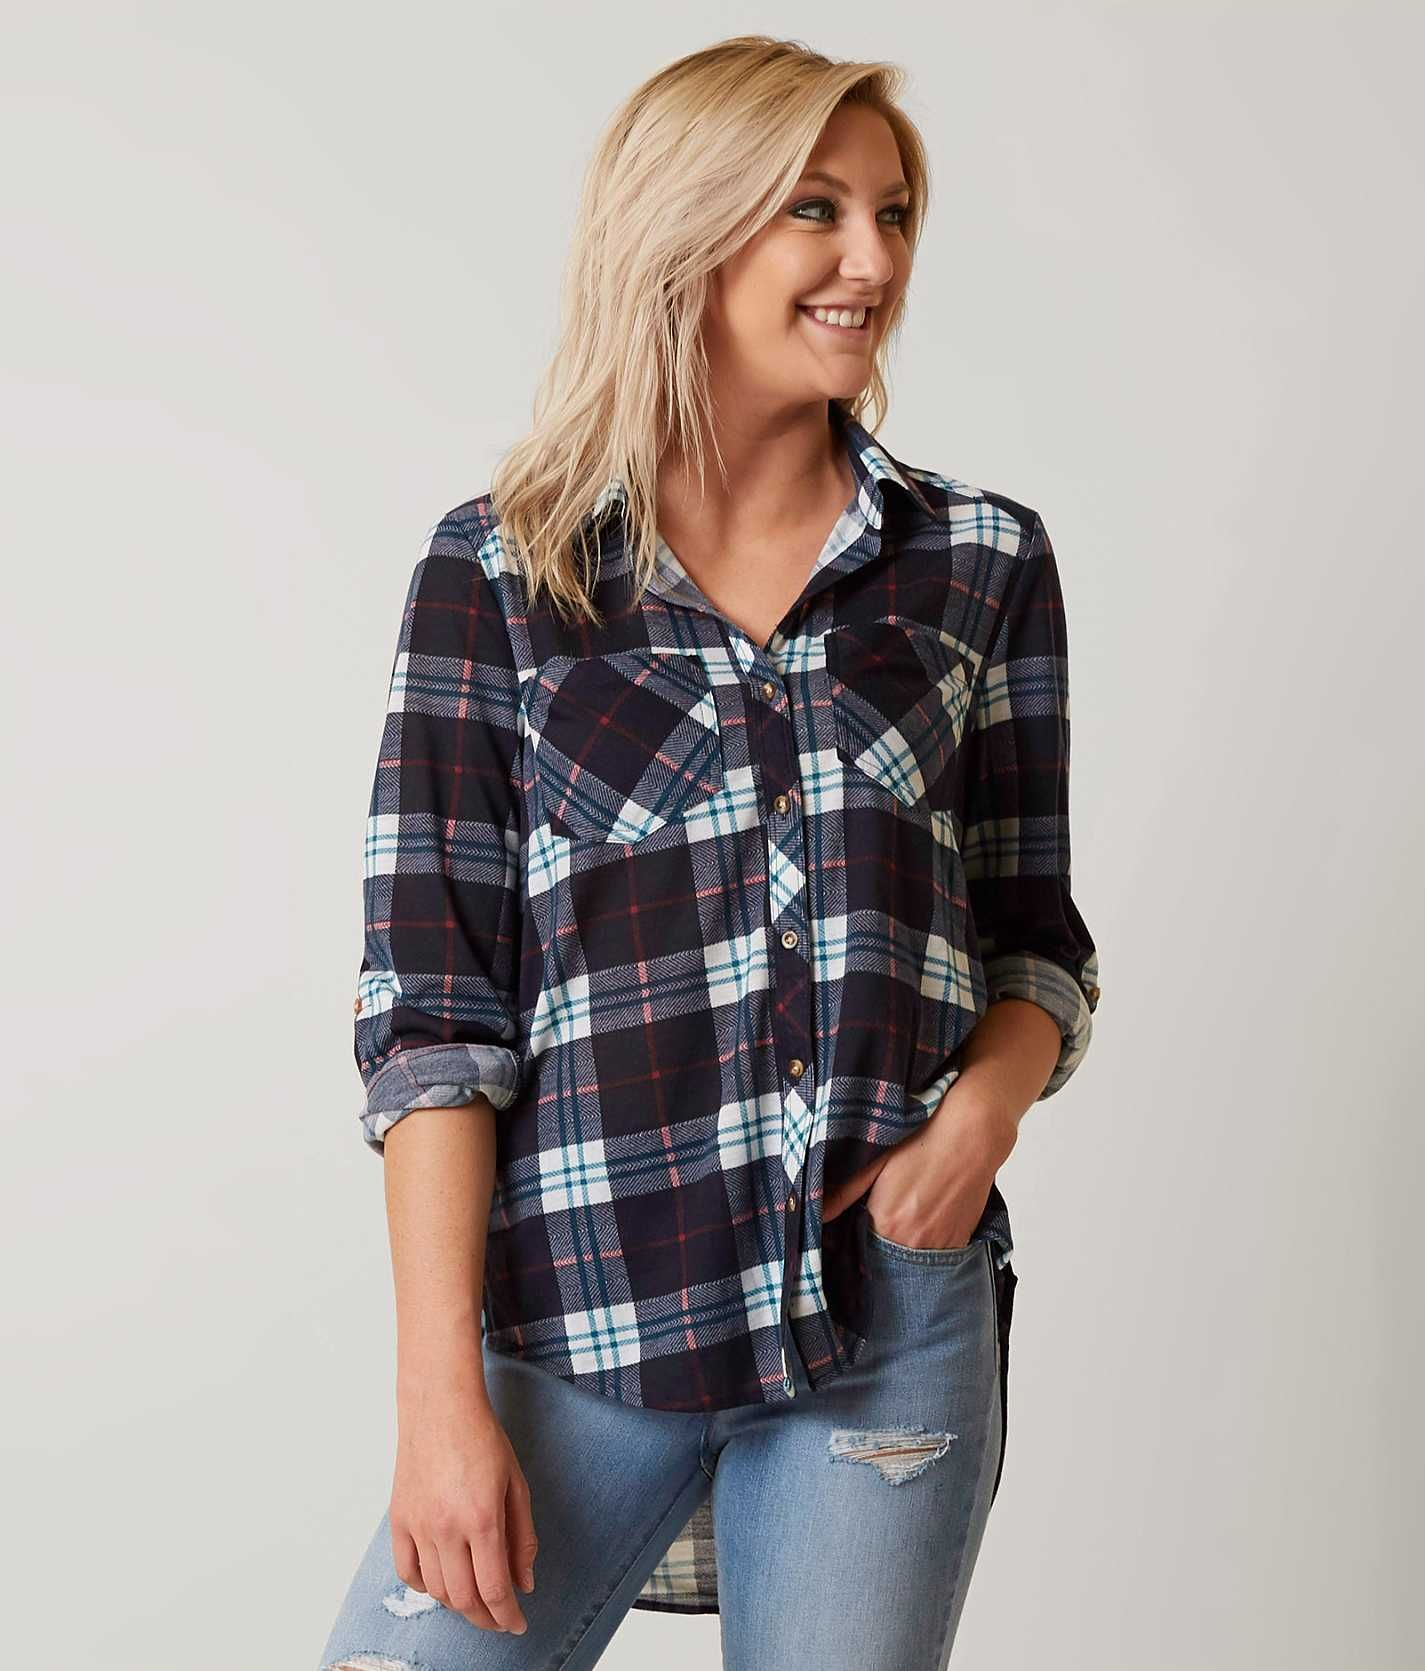 Flannel shirt outfits for women  Daytrip Plaid Shirt  Womenus ShirtsBlouses in Navy Teal Pink